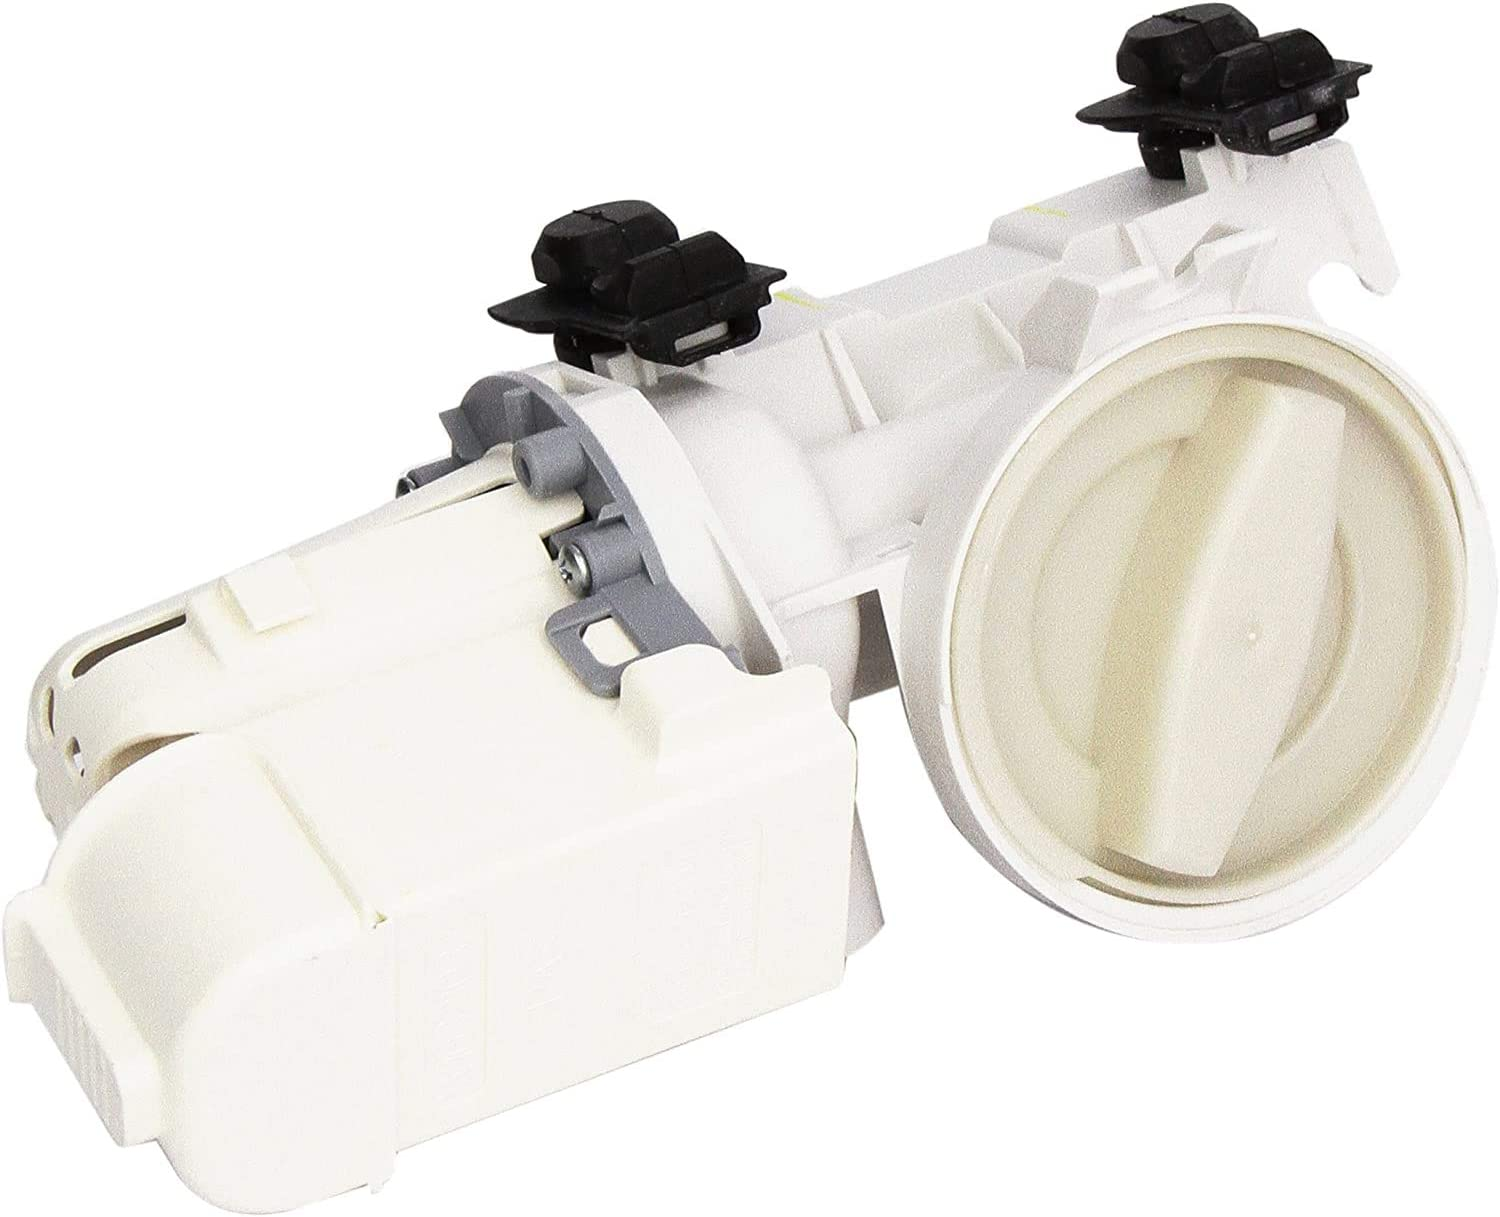 2-3 days delivery W10321032 Replacement Washer Water Pump Assembly WPW10321032